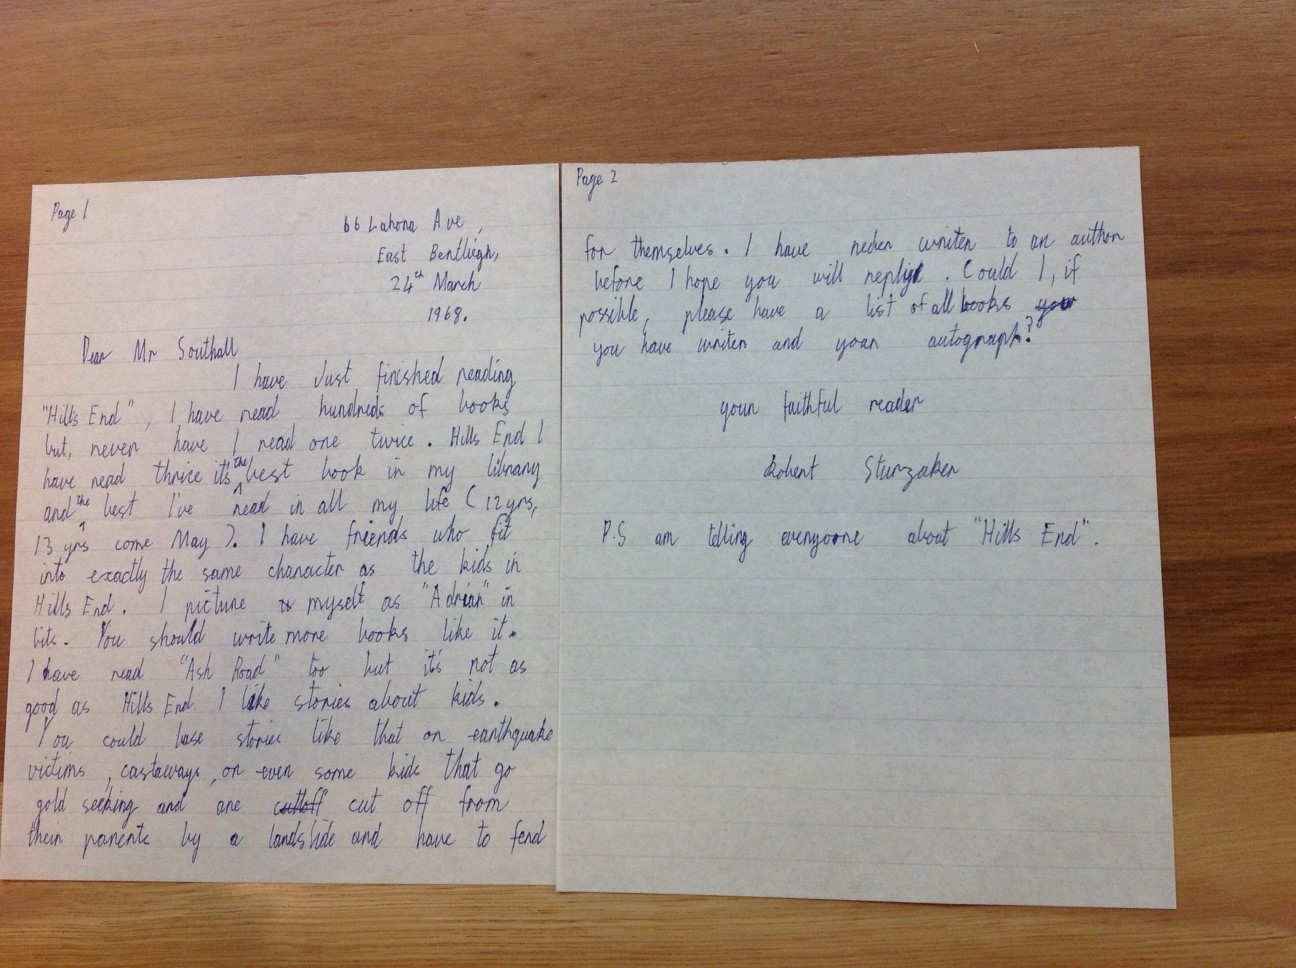 Letter to Ivan Southall